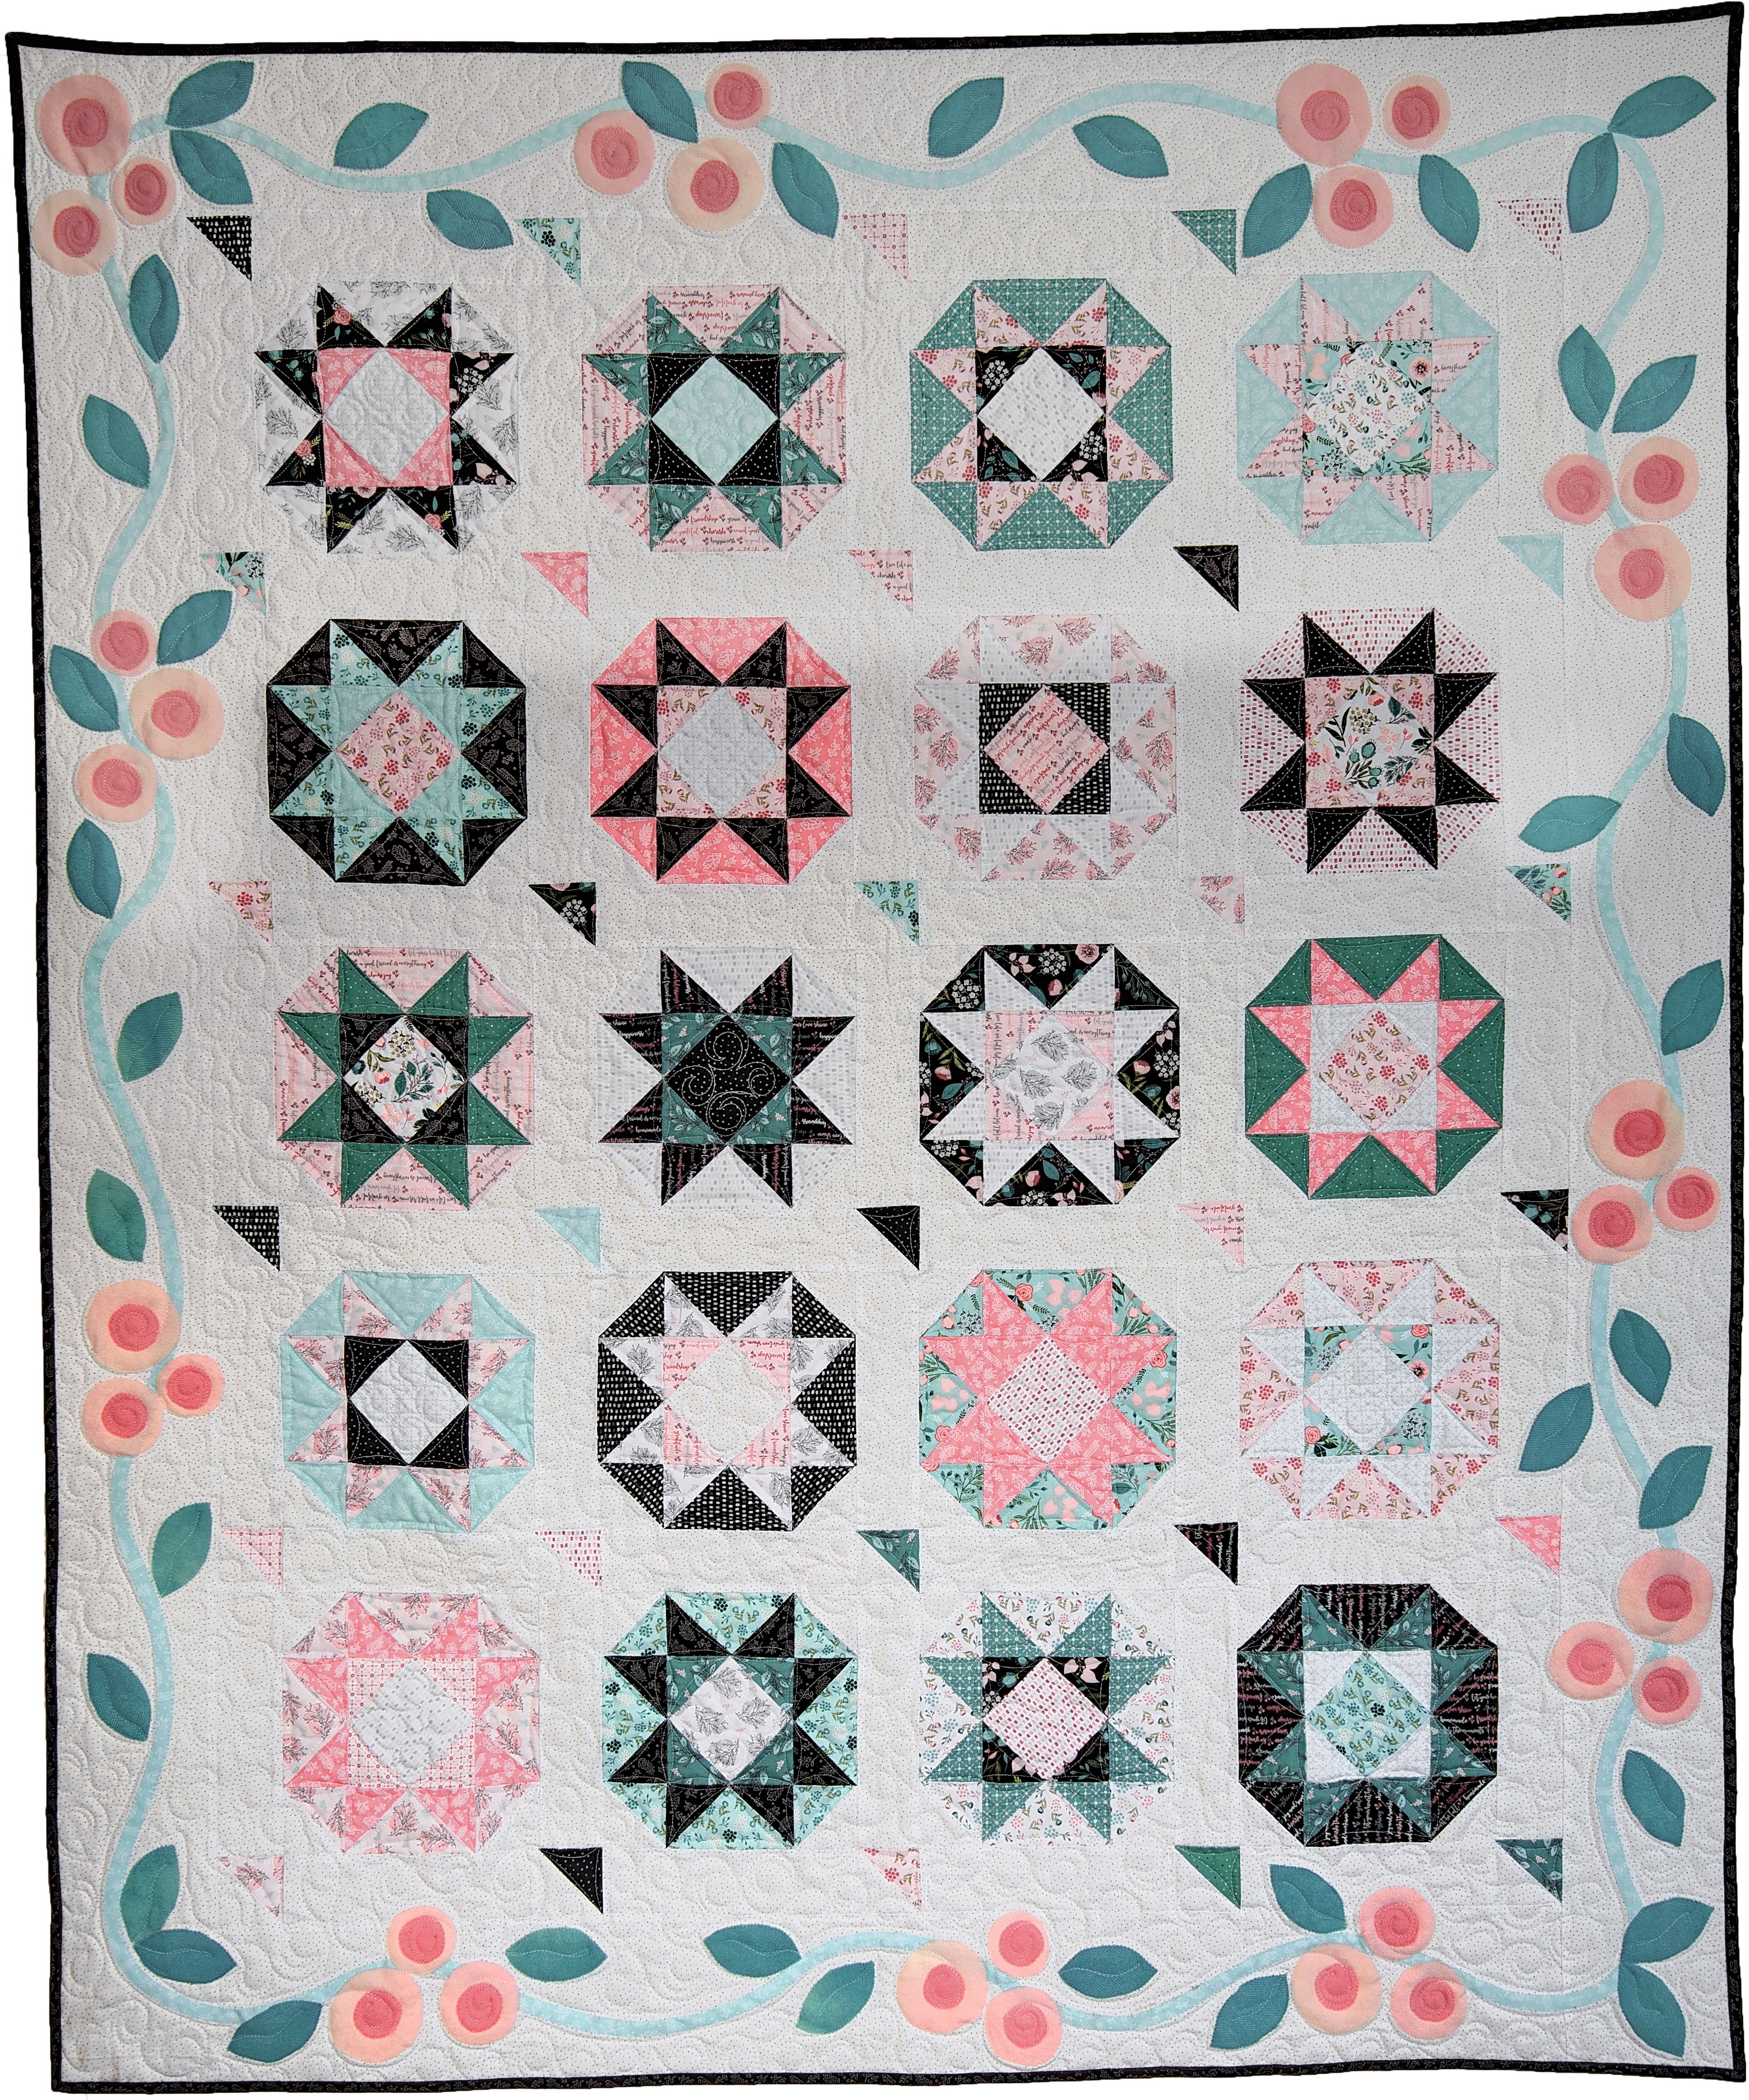 Twinkling Quilt